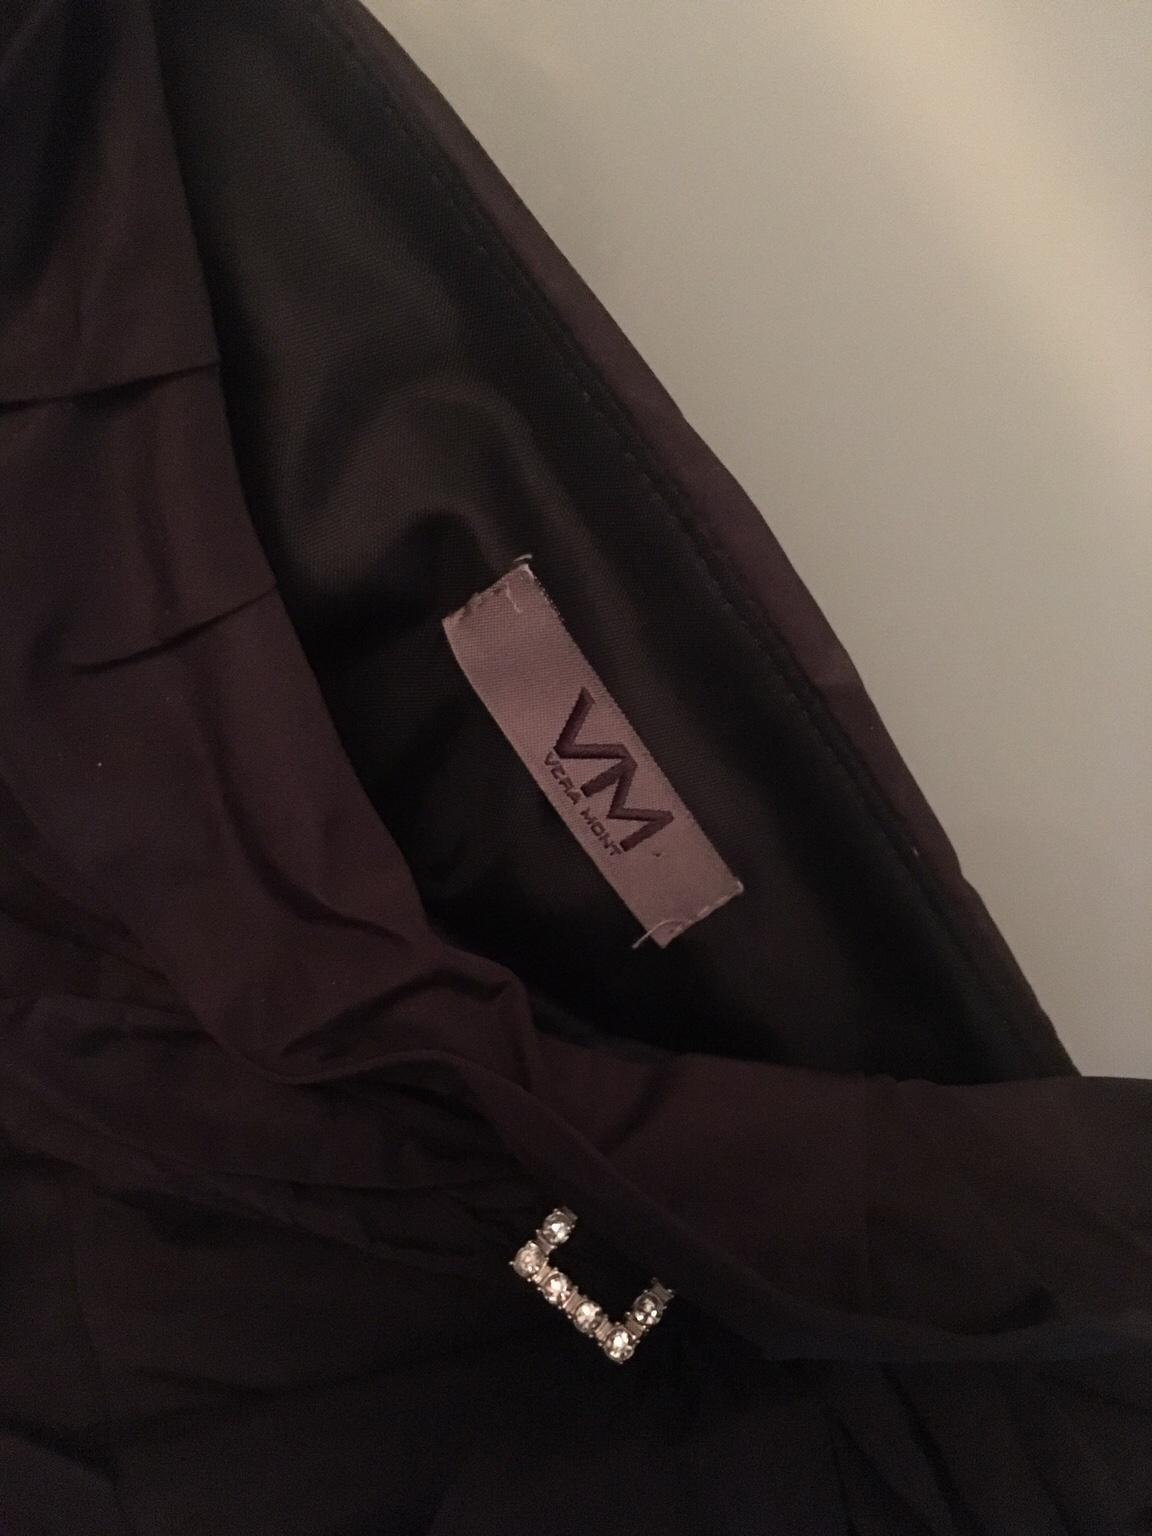 Abendkleid Ballkleid Vera Mont Schwarz 32 In 60594 Frankfurt Am Main For 58 00 For Sale Shpock